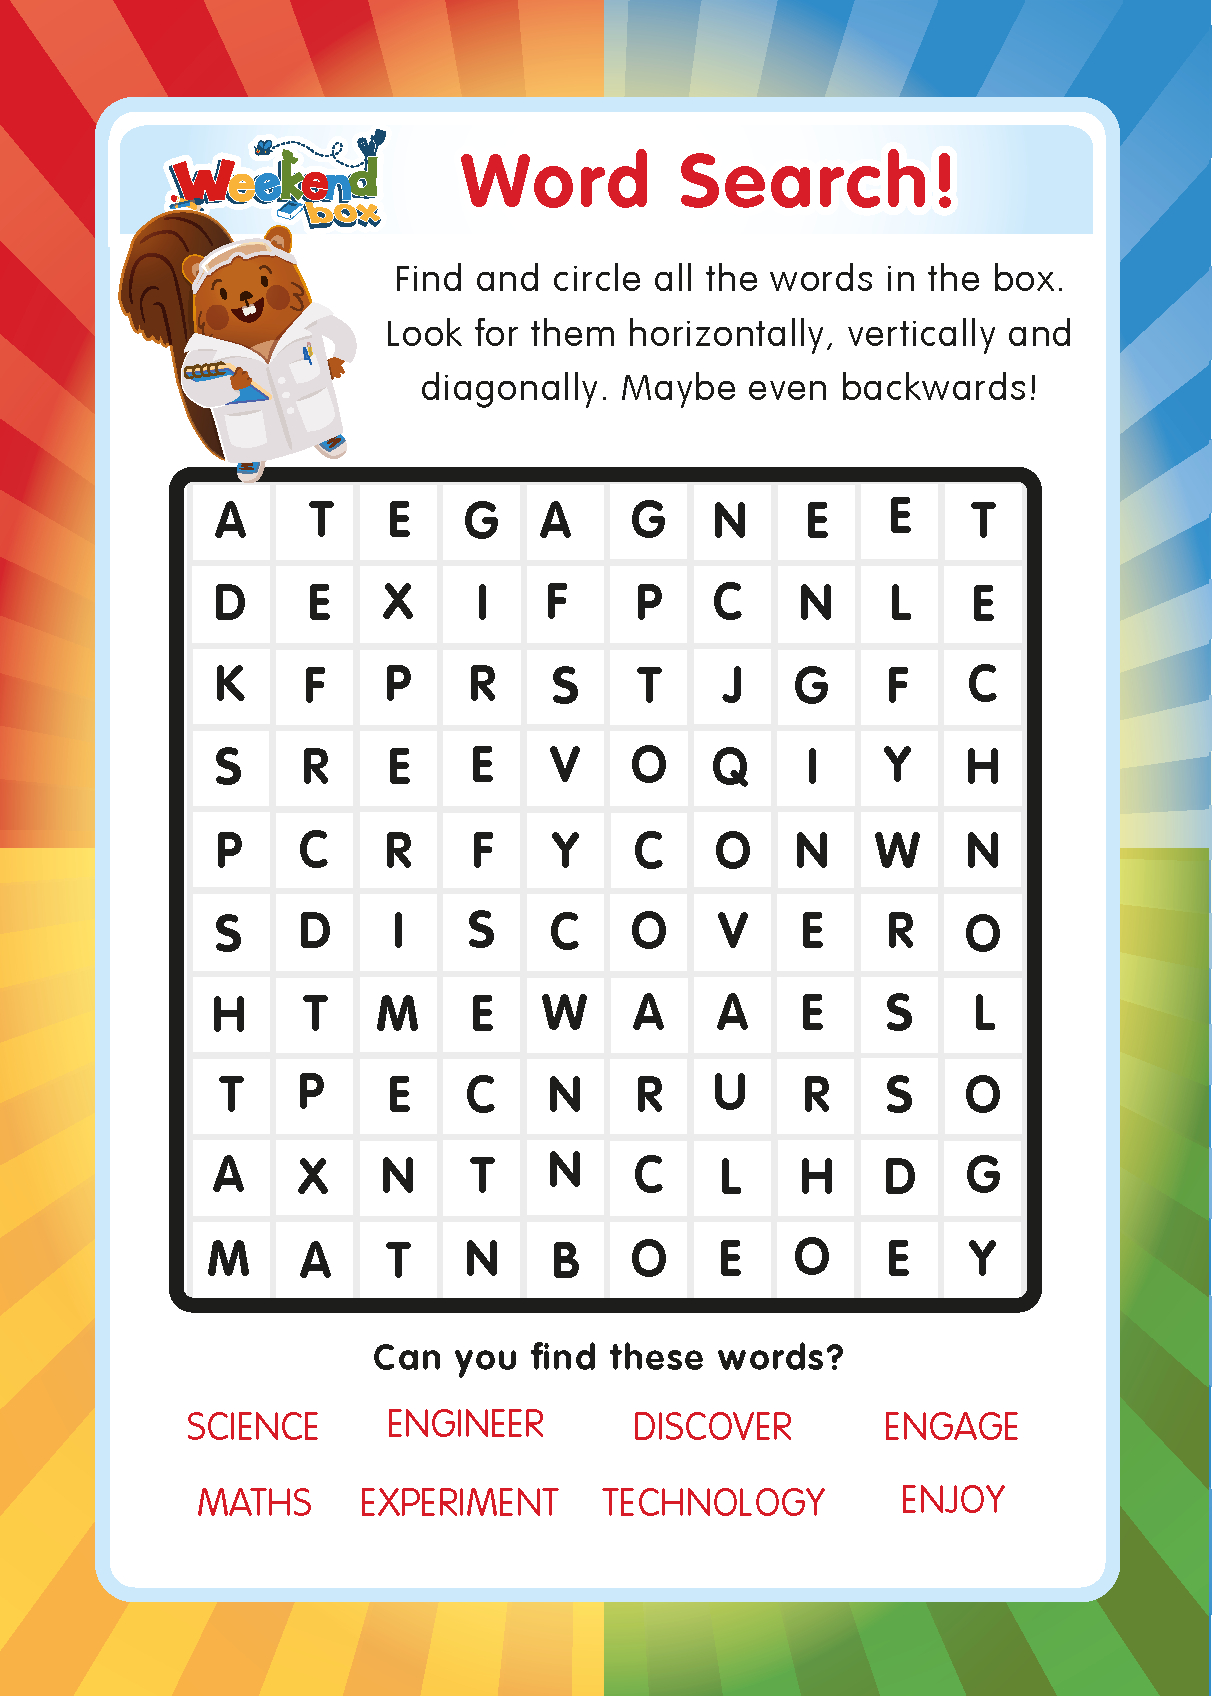 Free Weekend Box Club Printable Word Search Puzzles For Children - Free Online Printable Word Search